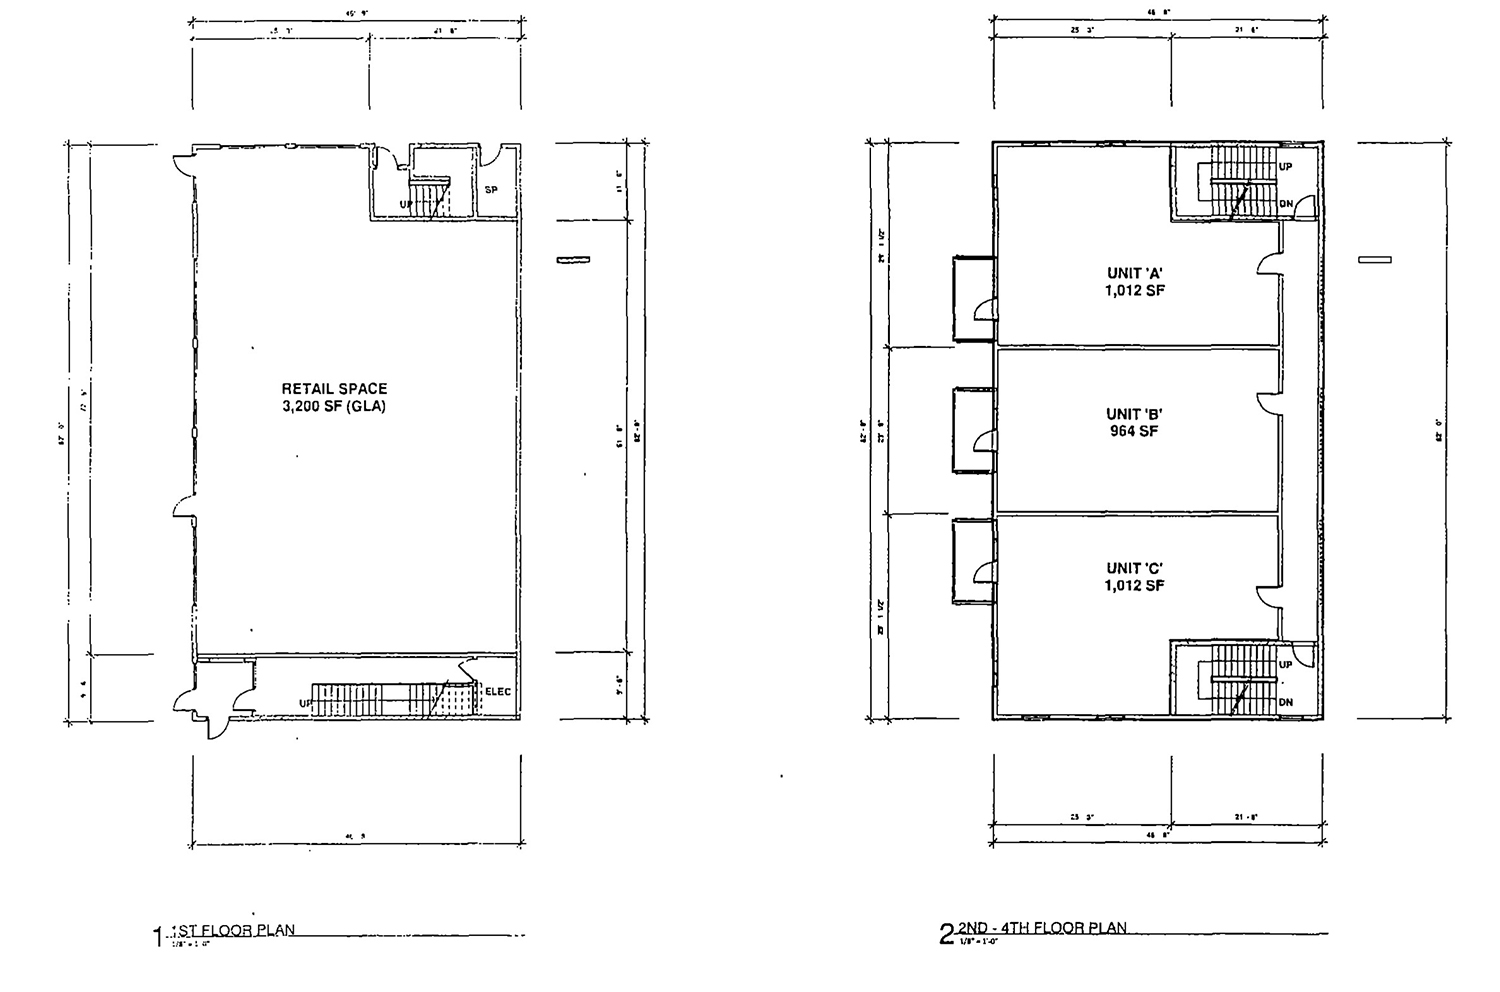 Floor Plans for Mixed-Use Building at 1601 N Western Avenue. Drawing by Design Studio 24